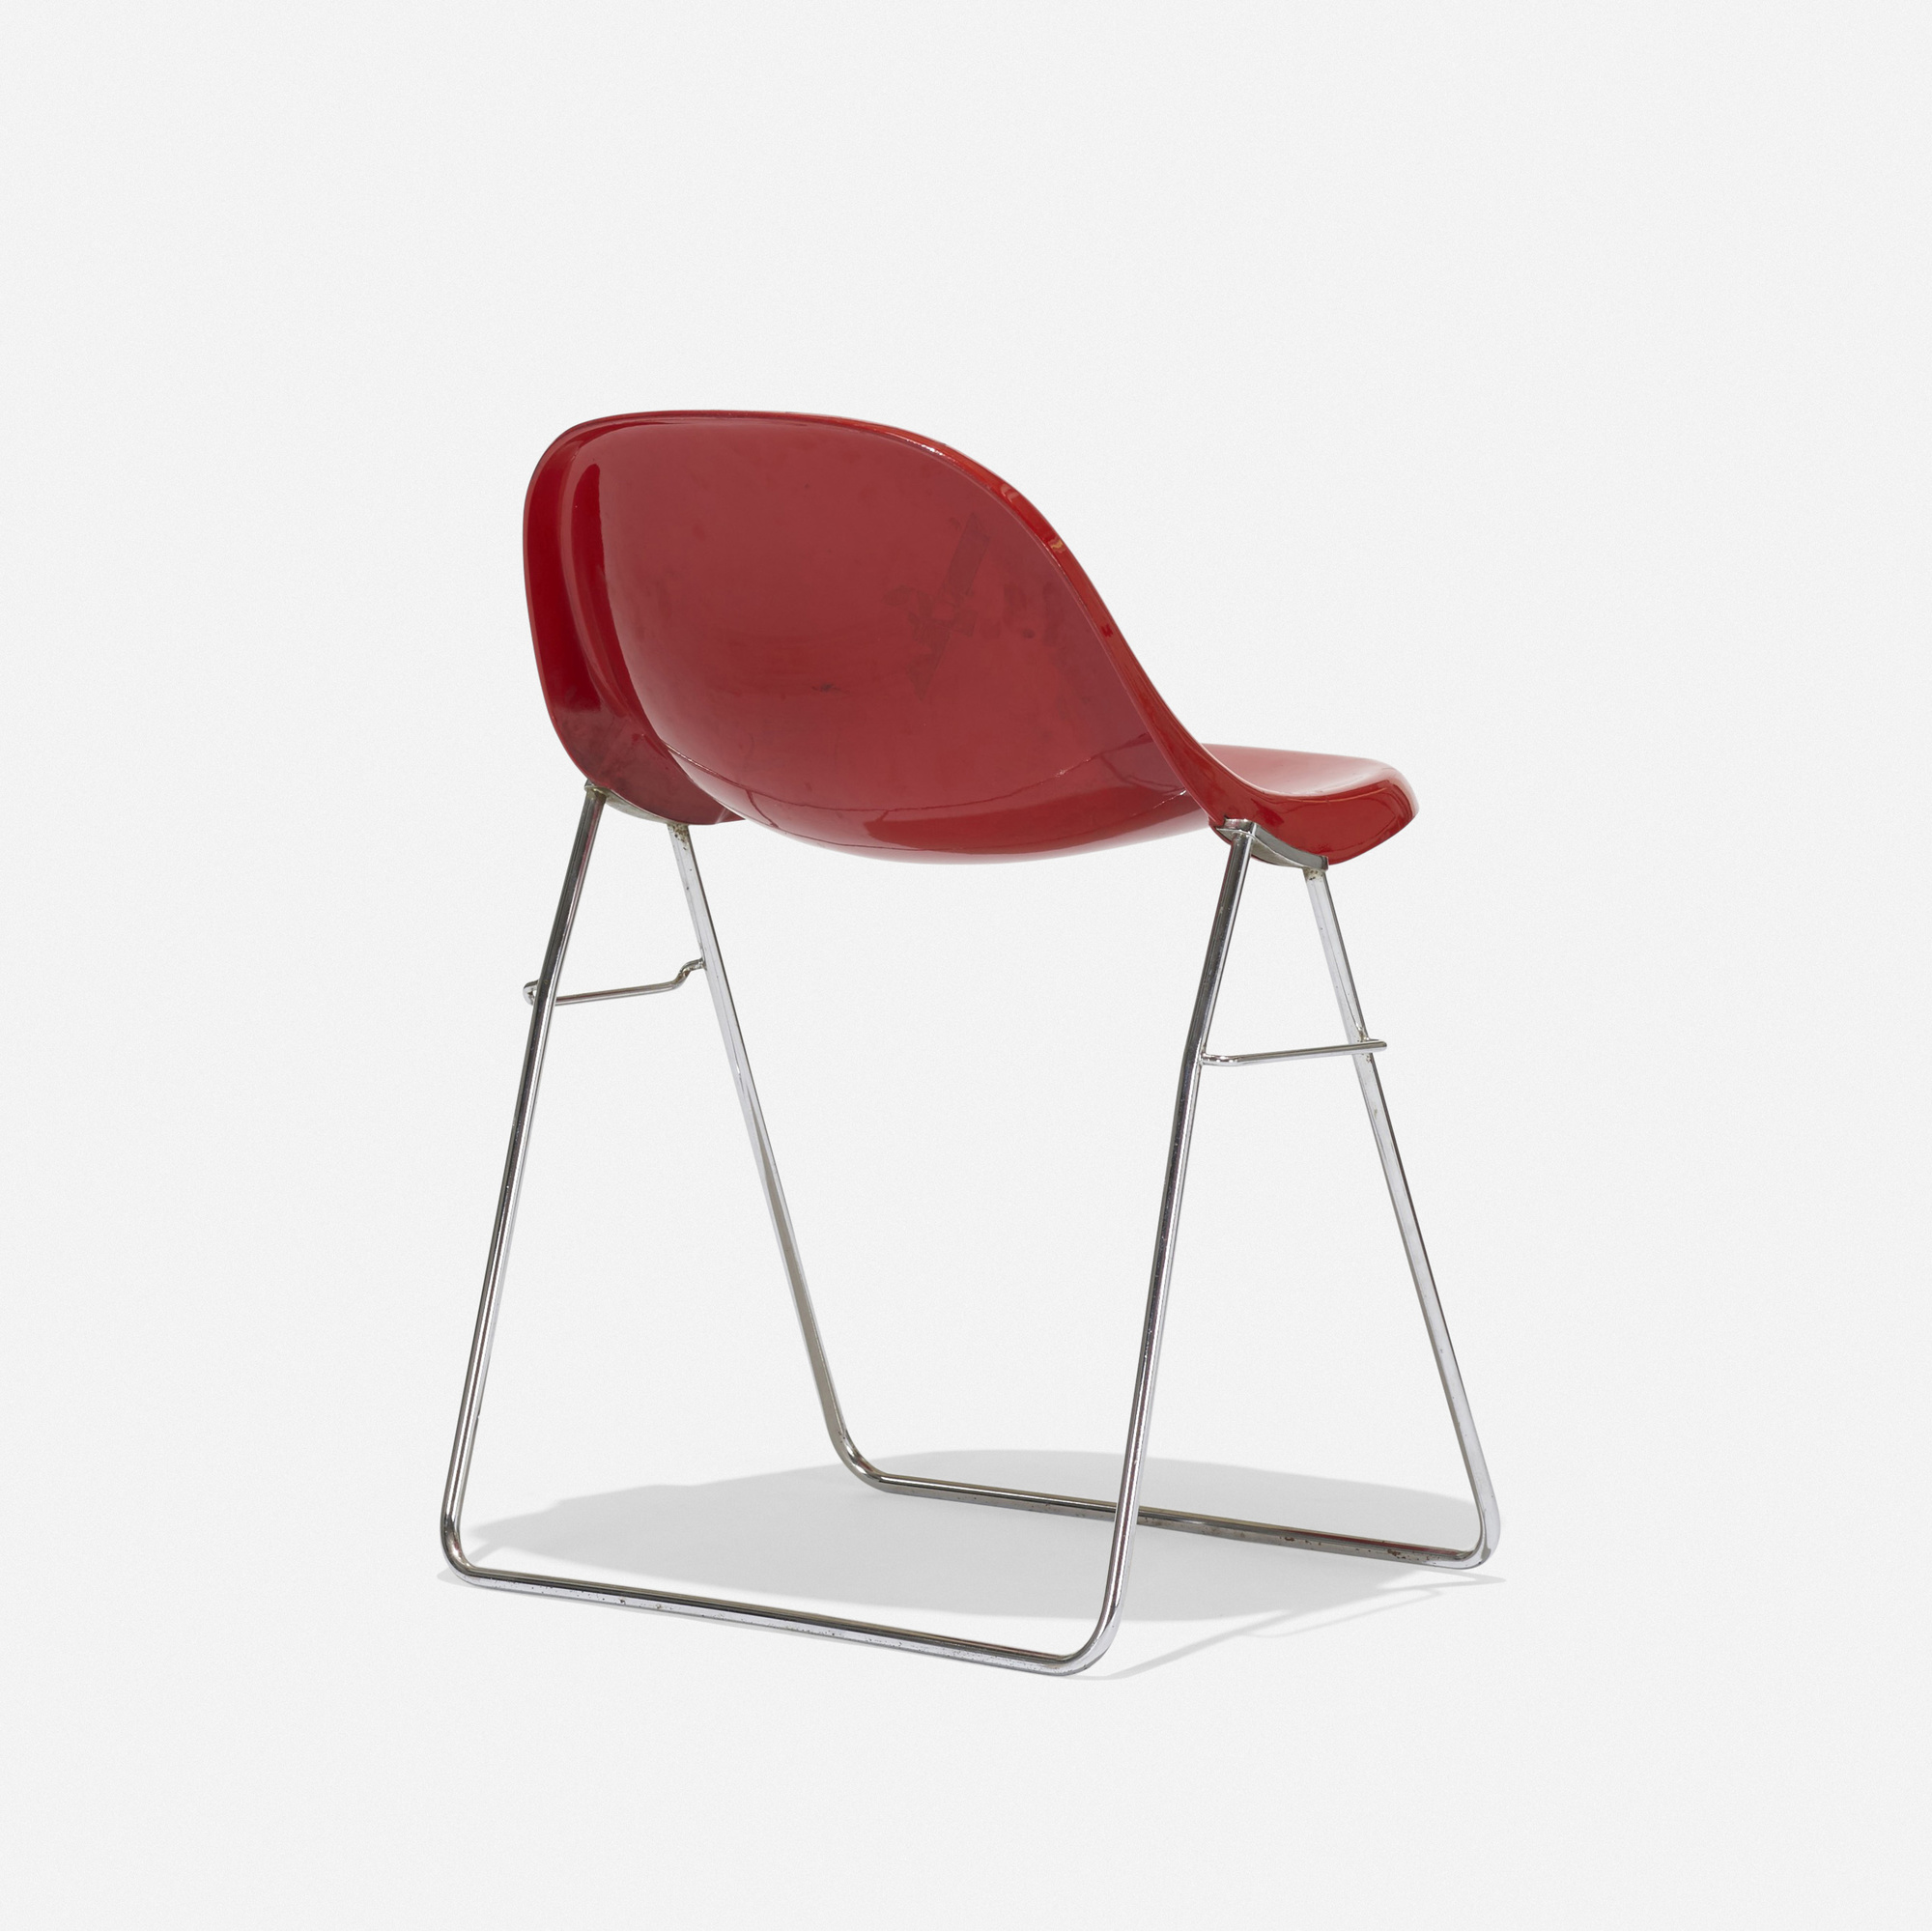 396: Marco Zanuso / Minisit chair (2 of 3)